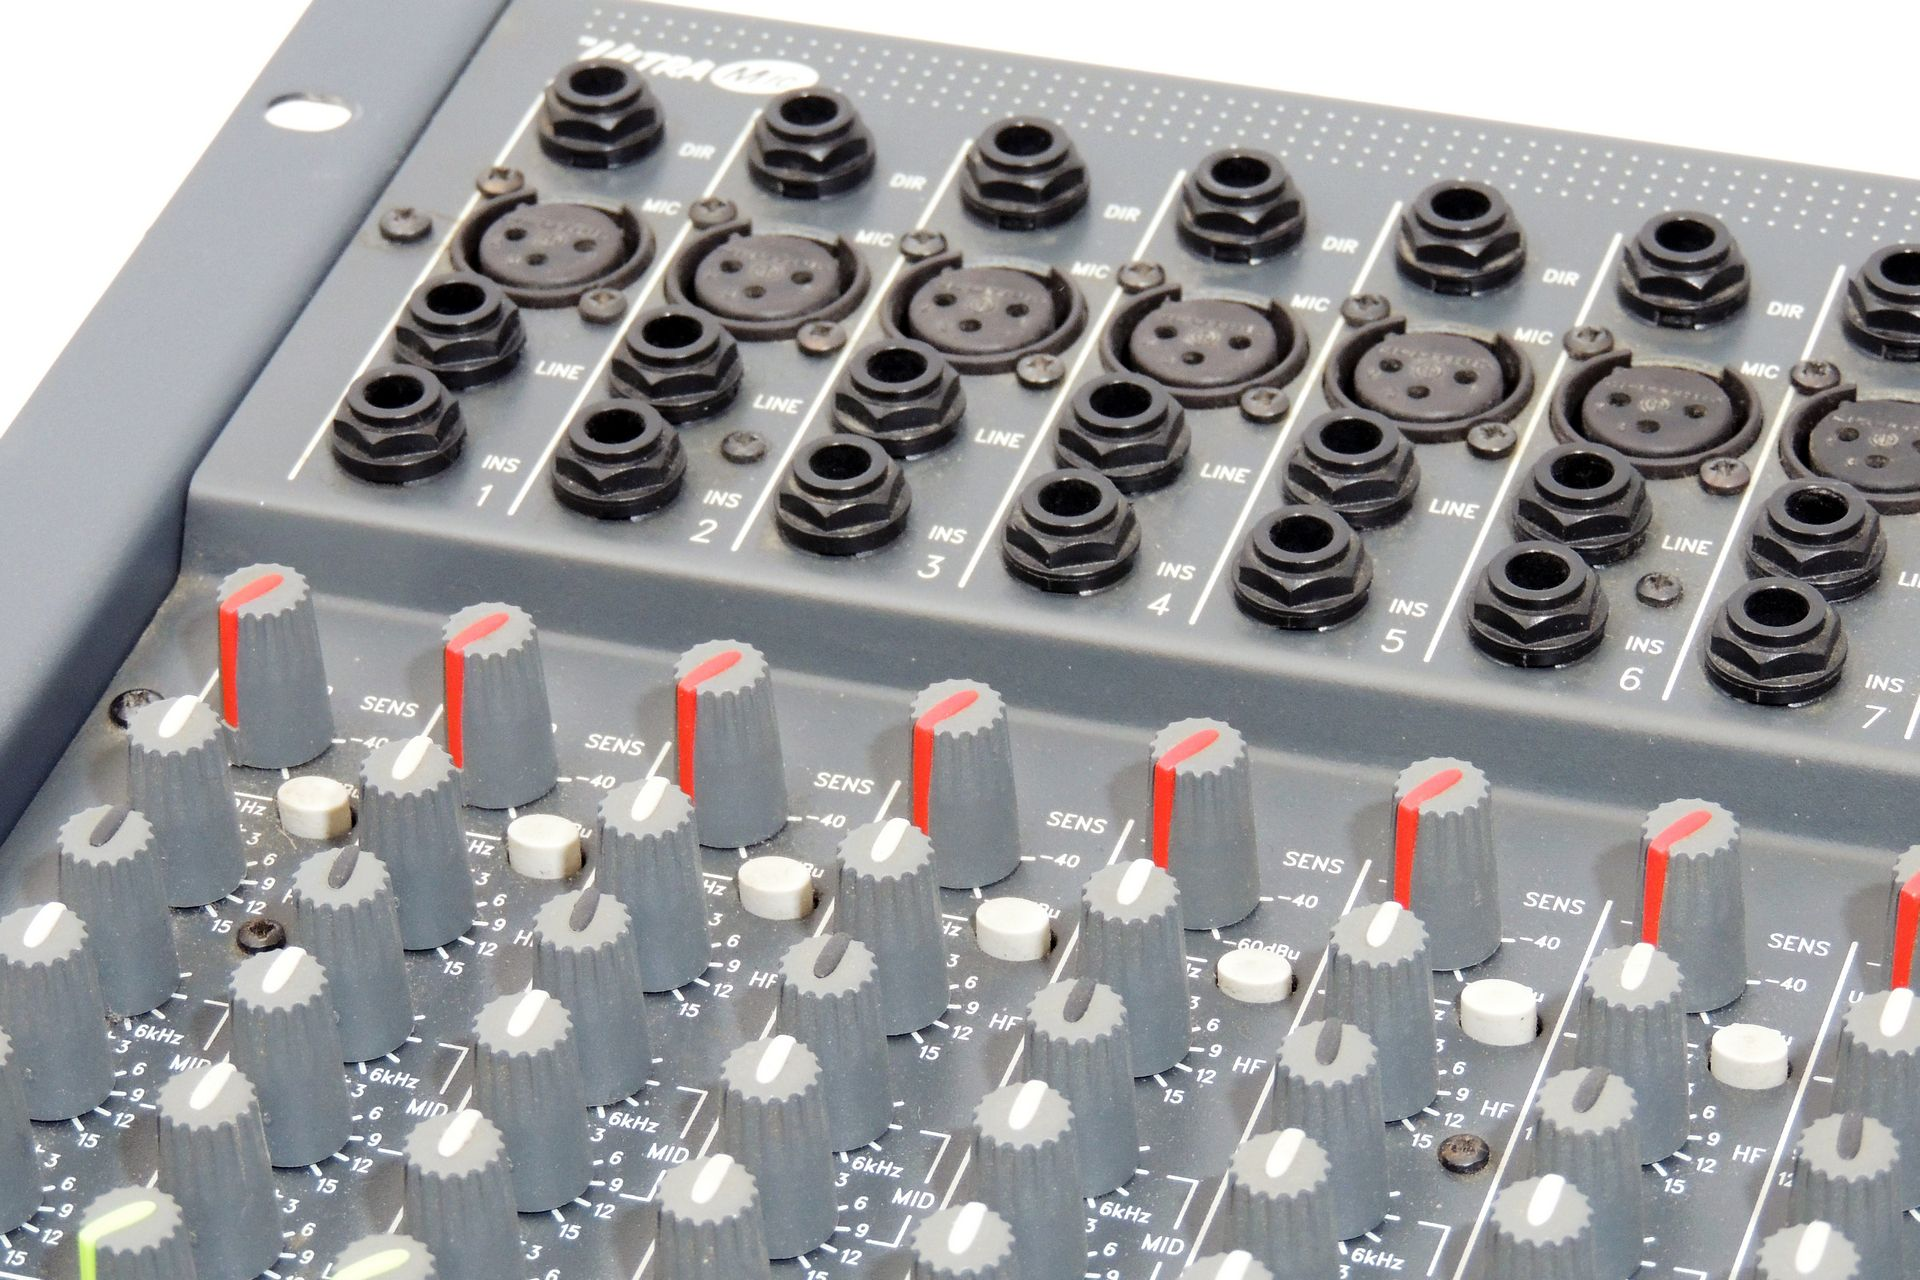 Sprit Folio SX 16:2 mixing desk for sale at Plasma Music